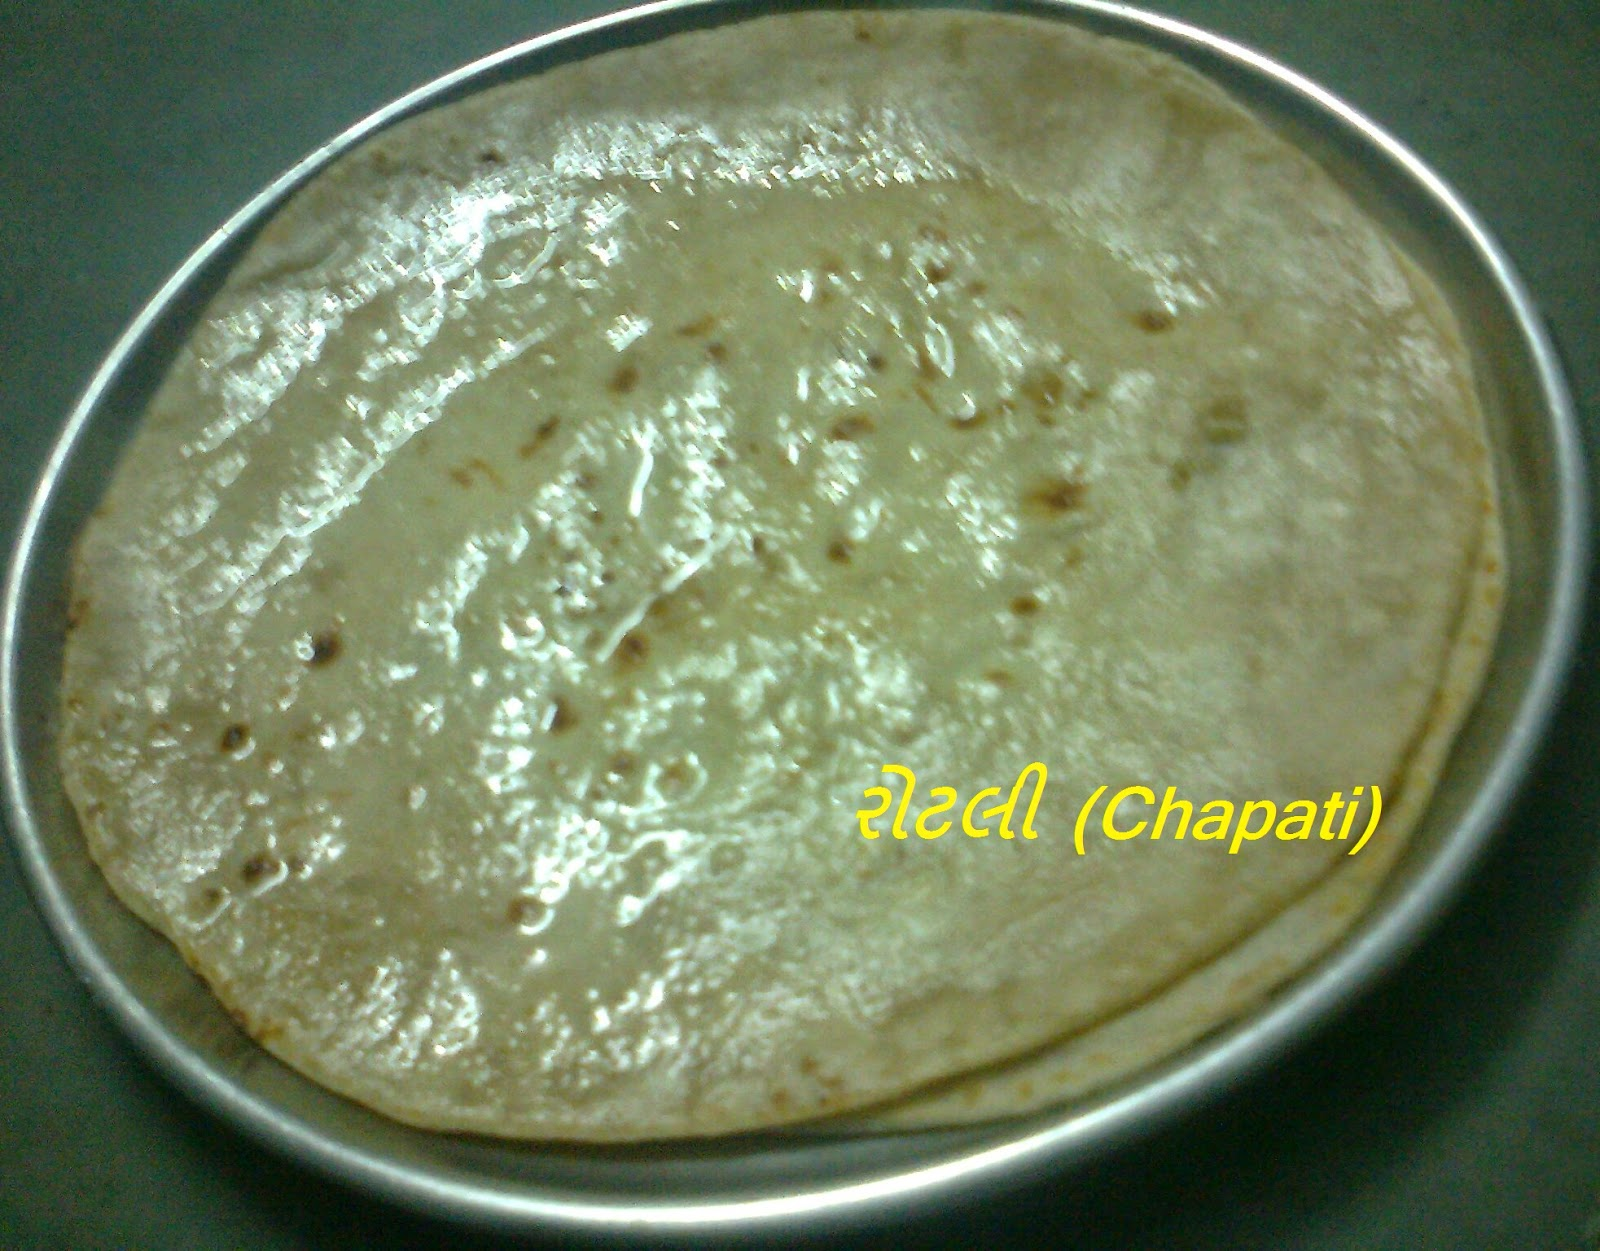 wheat flour rotli recipe